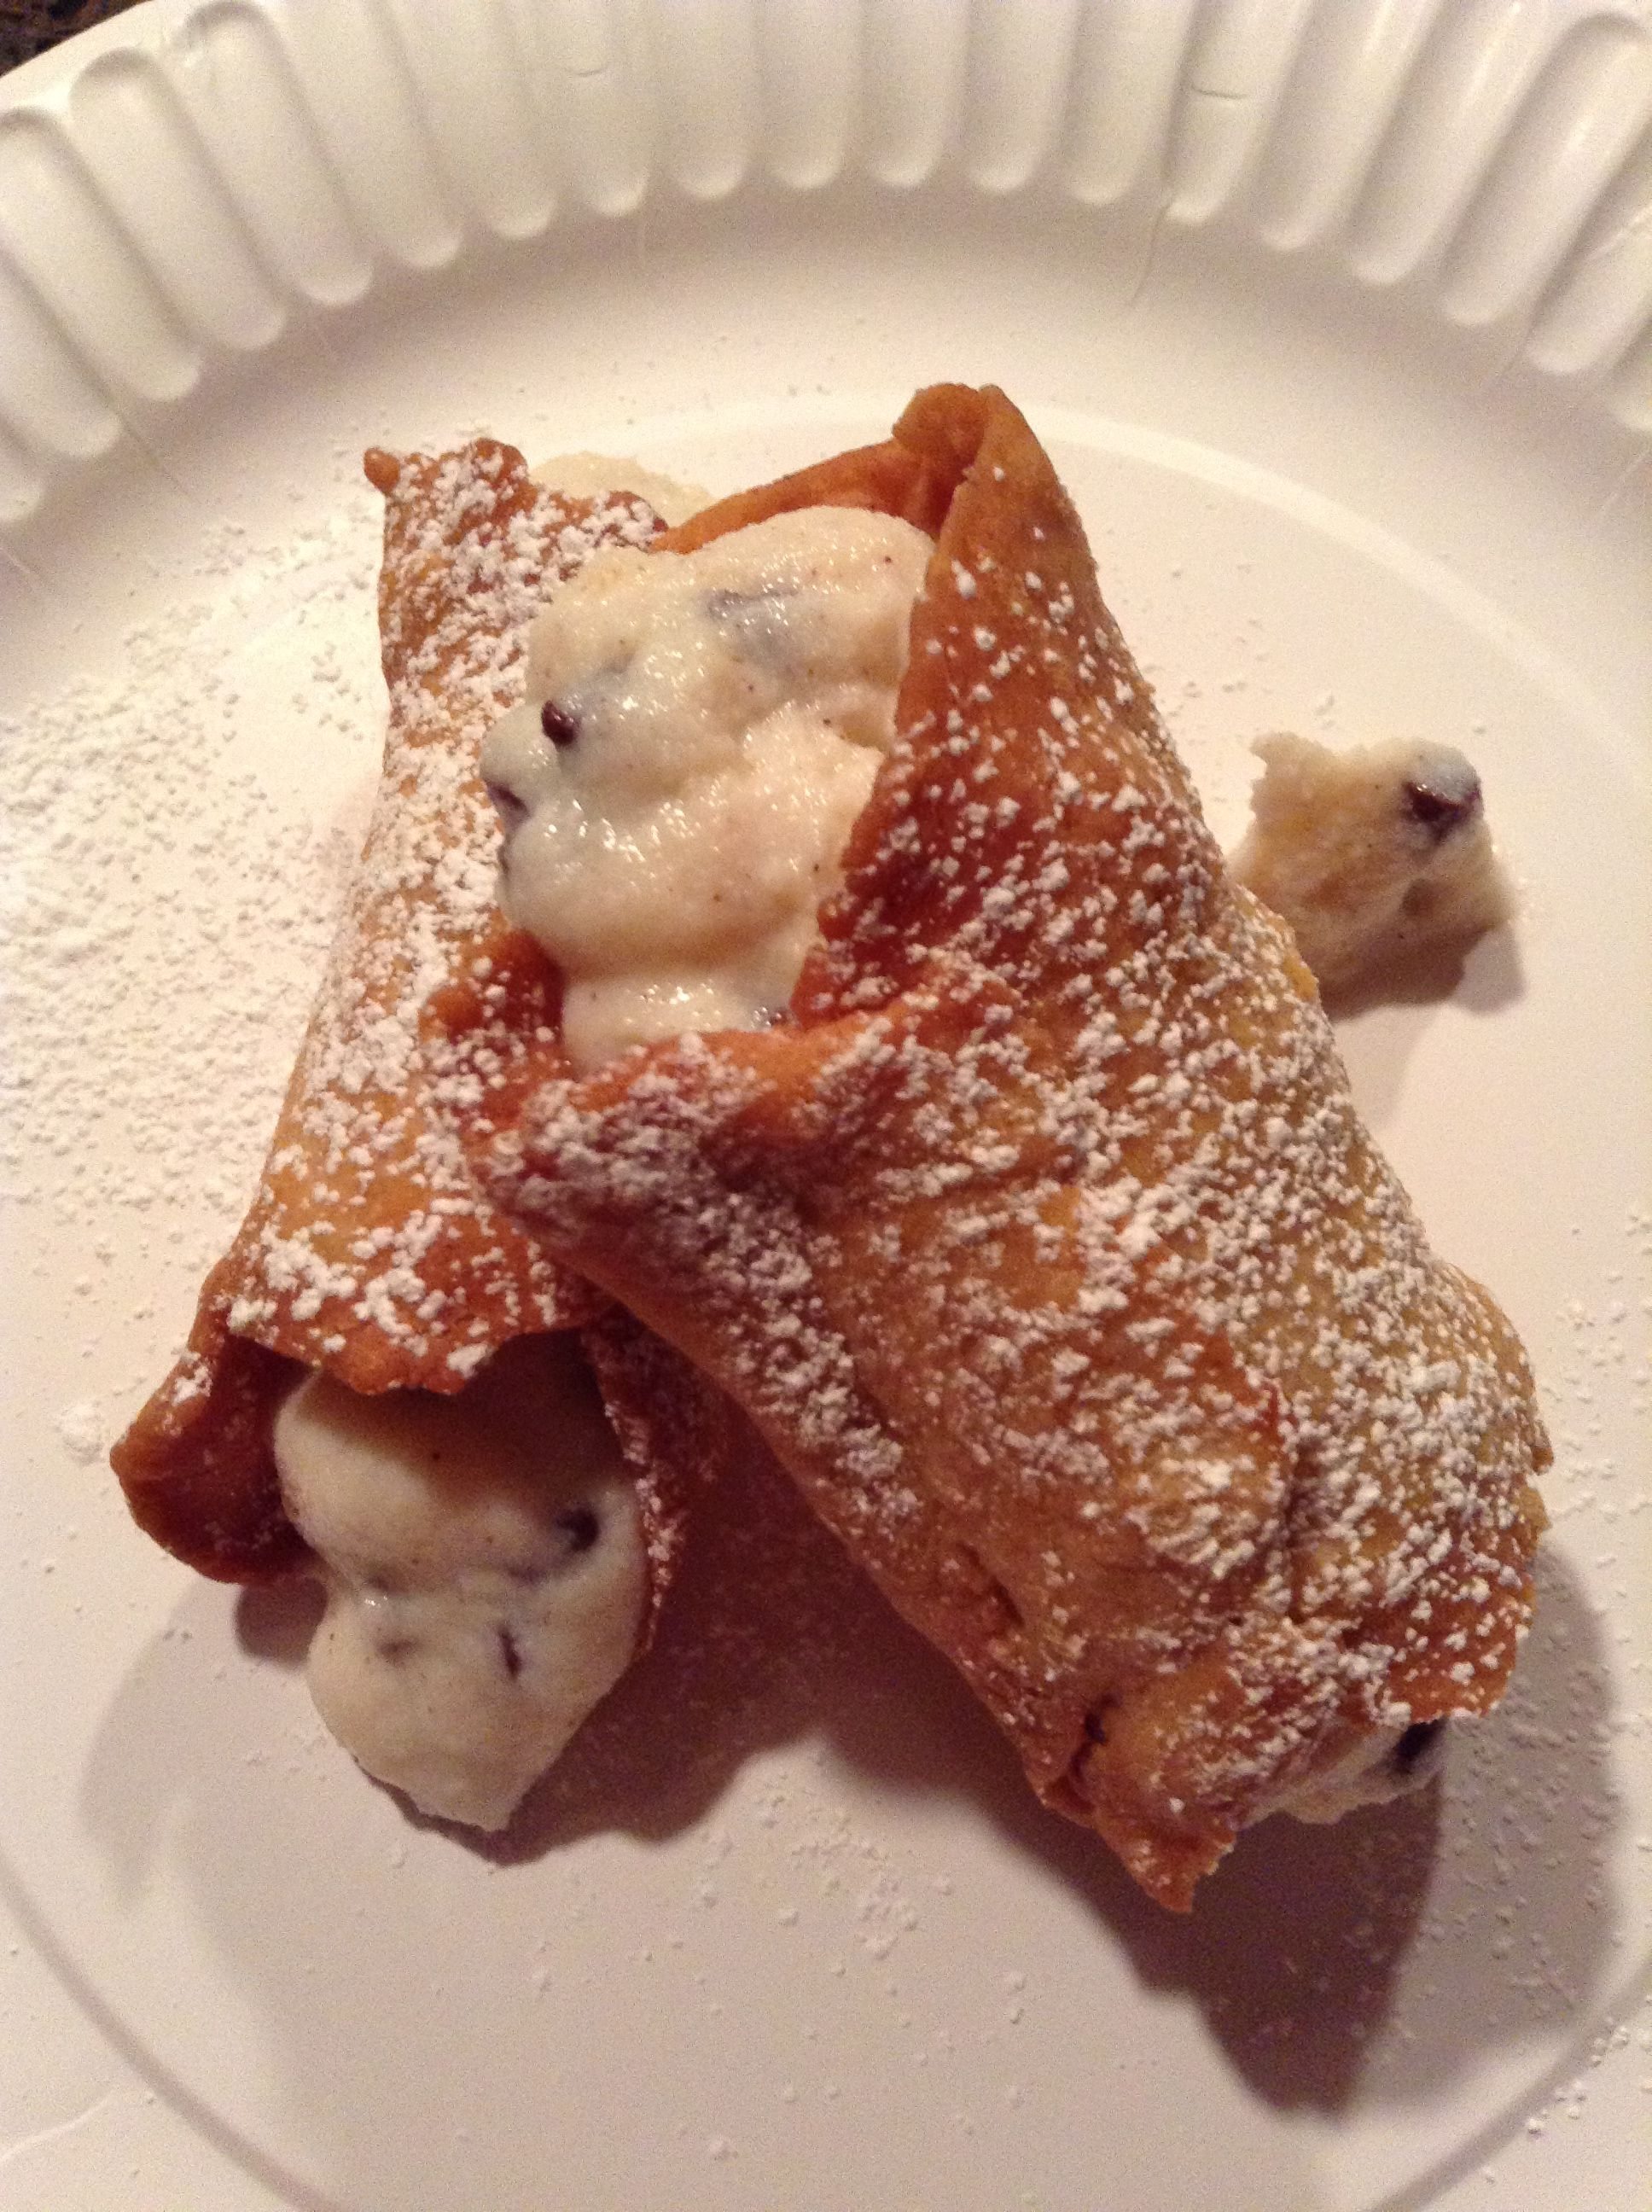 Pin by Angie Chatterton on Cake boss recipes | Cake boss recipes, Cannoli recipe, Cooking recipes